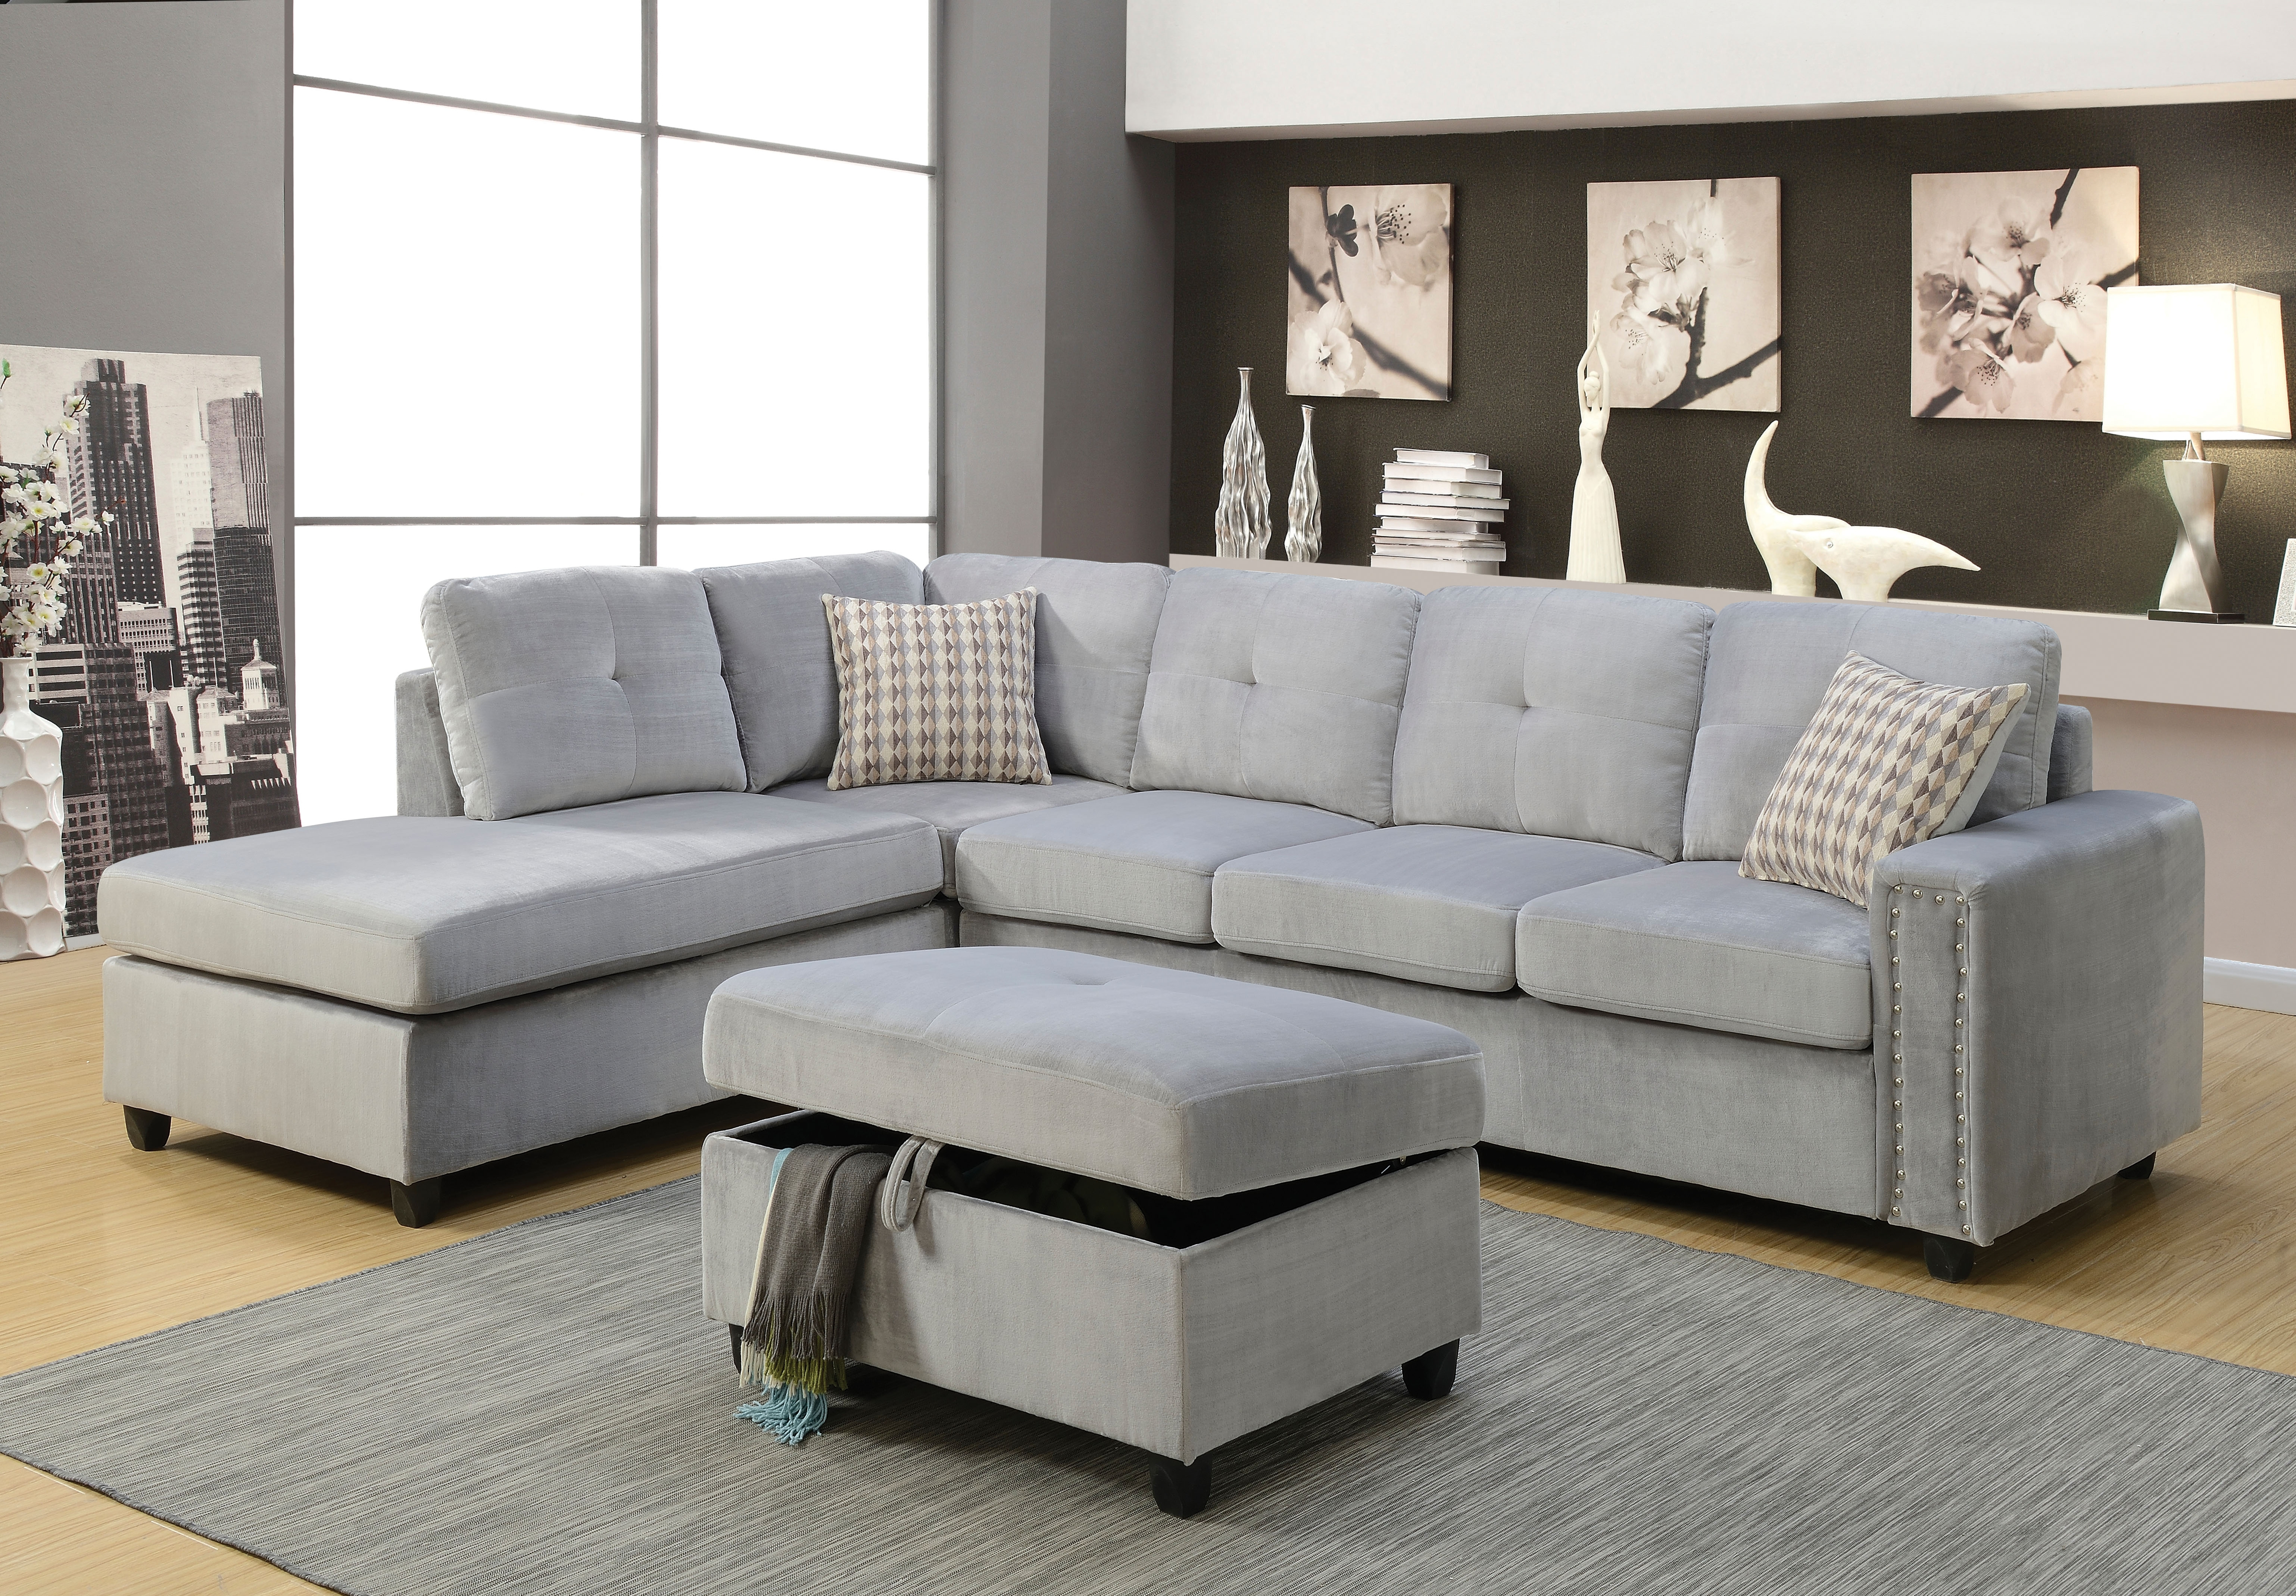 Light Grey Sectional Sofas Intended For Newest Beautiful Gray Sectional Sofas Ideas – Liltigertoo (View 11 of 20)